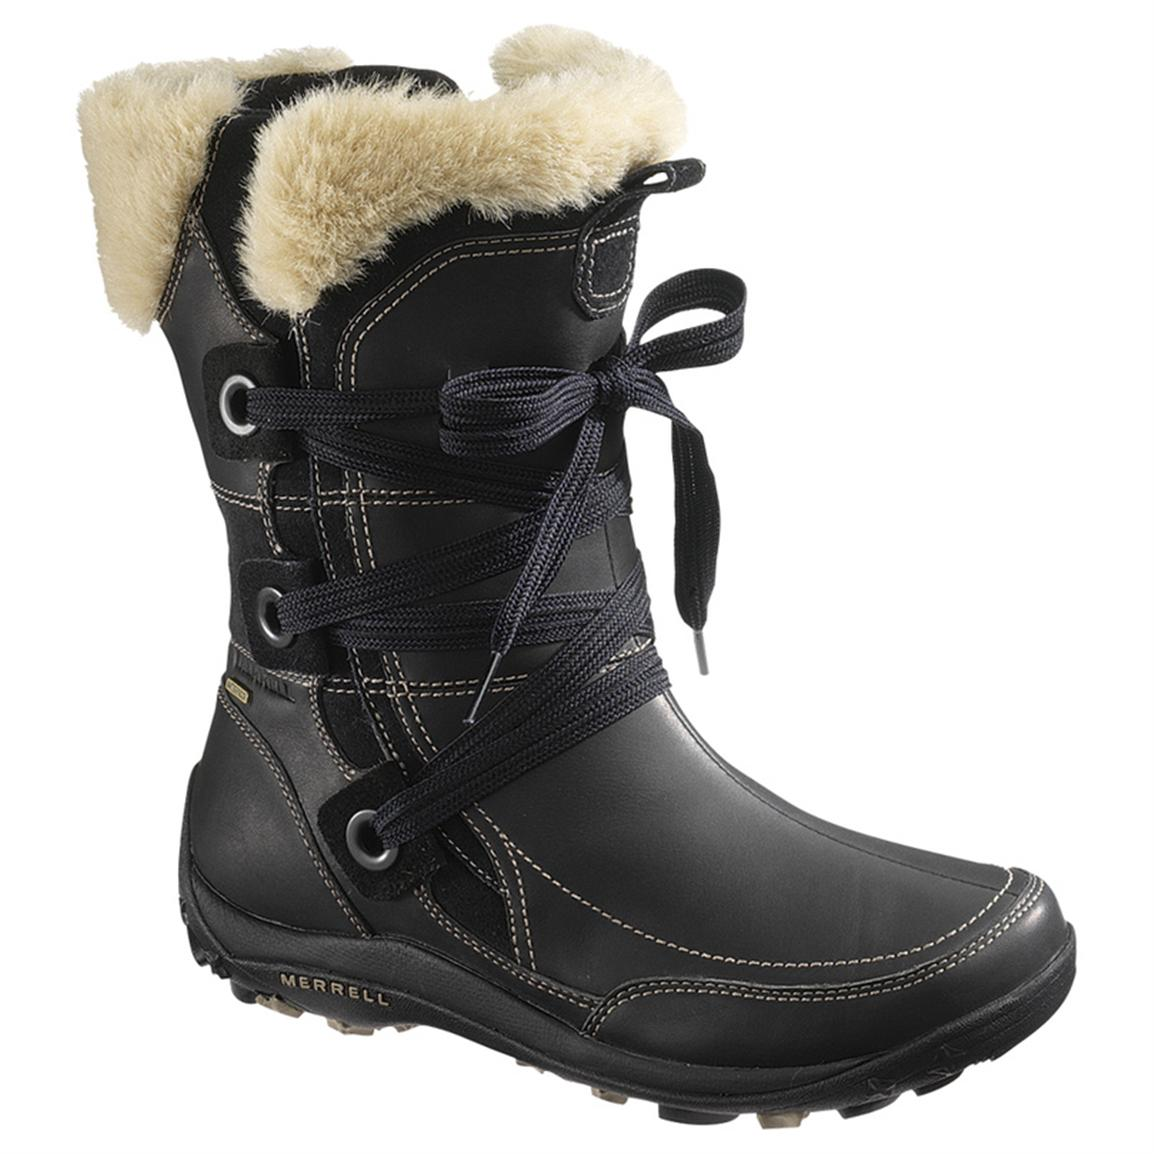 Insulated Snow Boots Rdd2xTq3